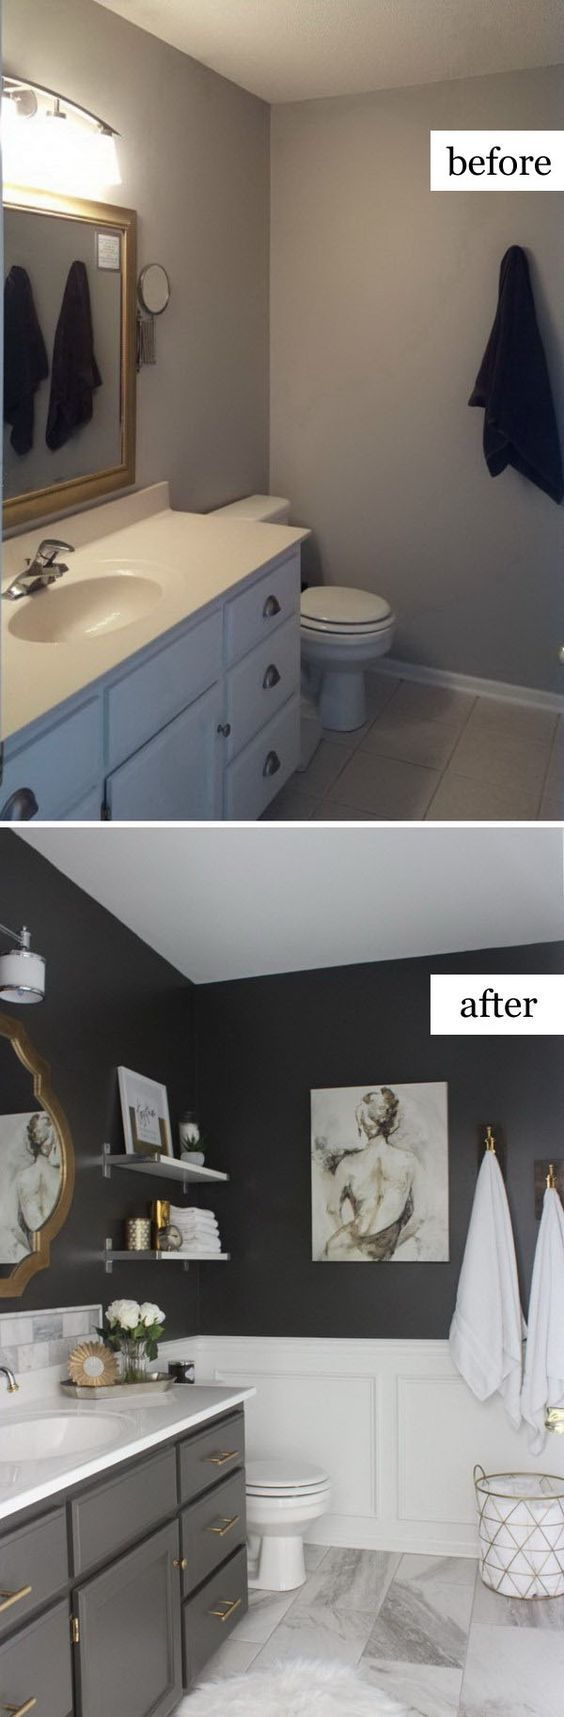 Home Decor Ideas Official Youtube Channel S Pinterest Acount Slide Home Video Home Design D Master Bathroom Makeover Small Bathroom Remodel Home Remodeling